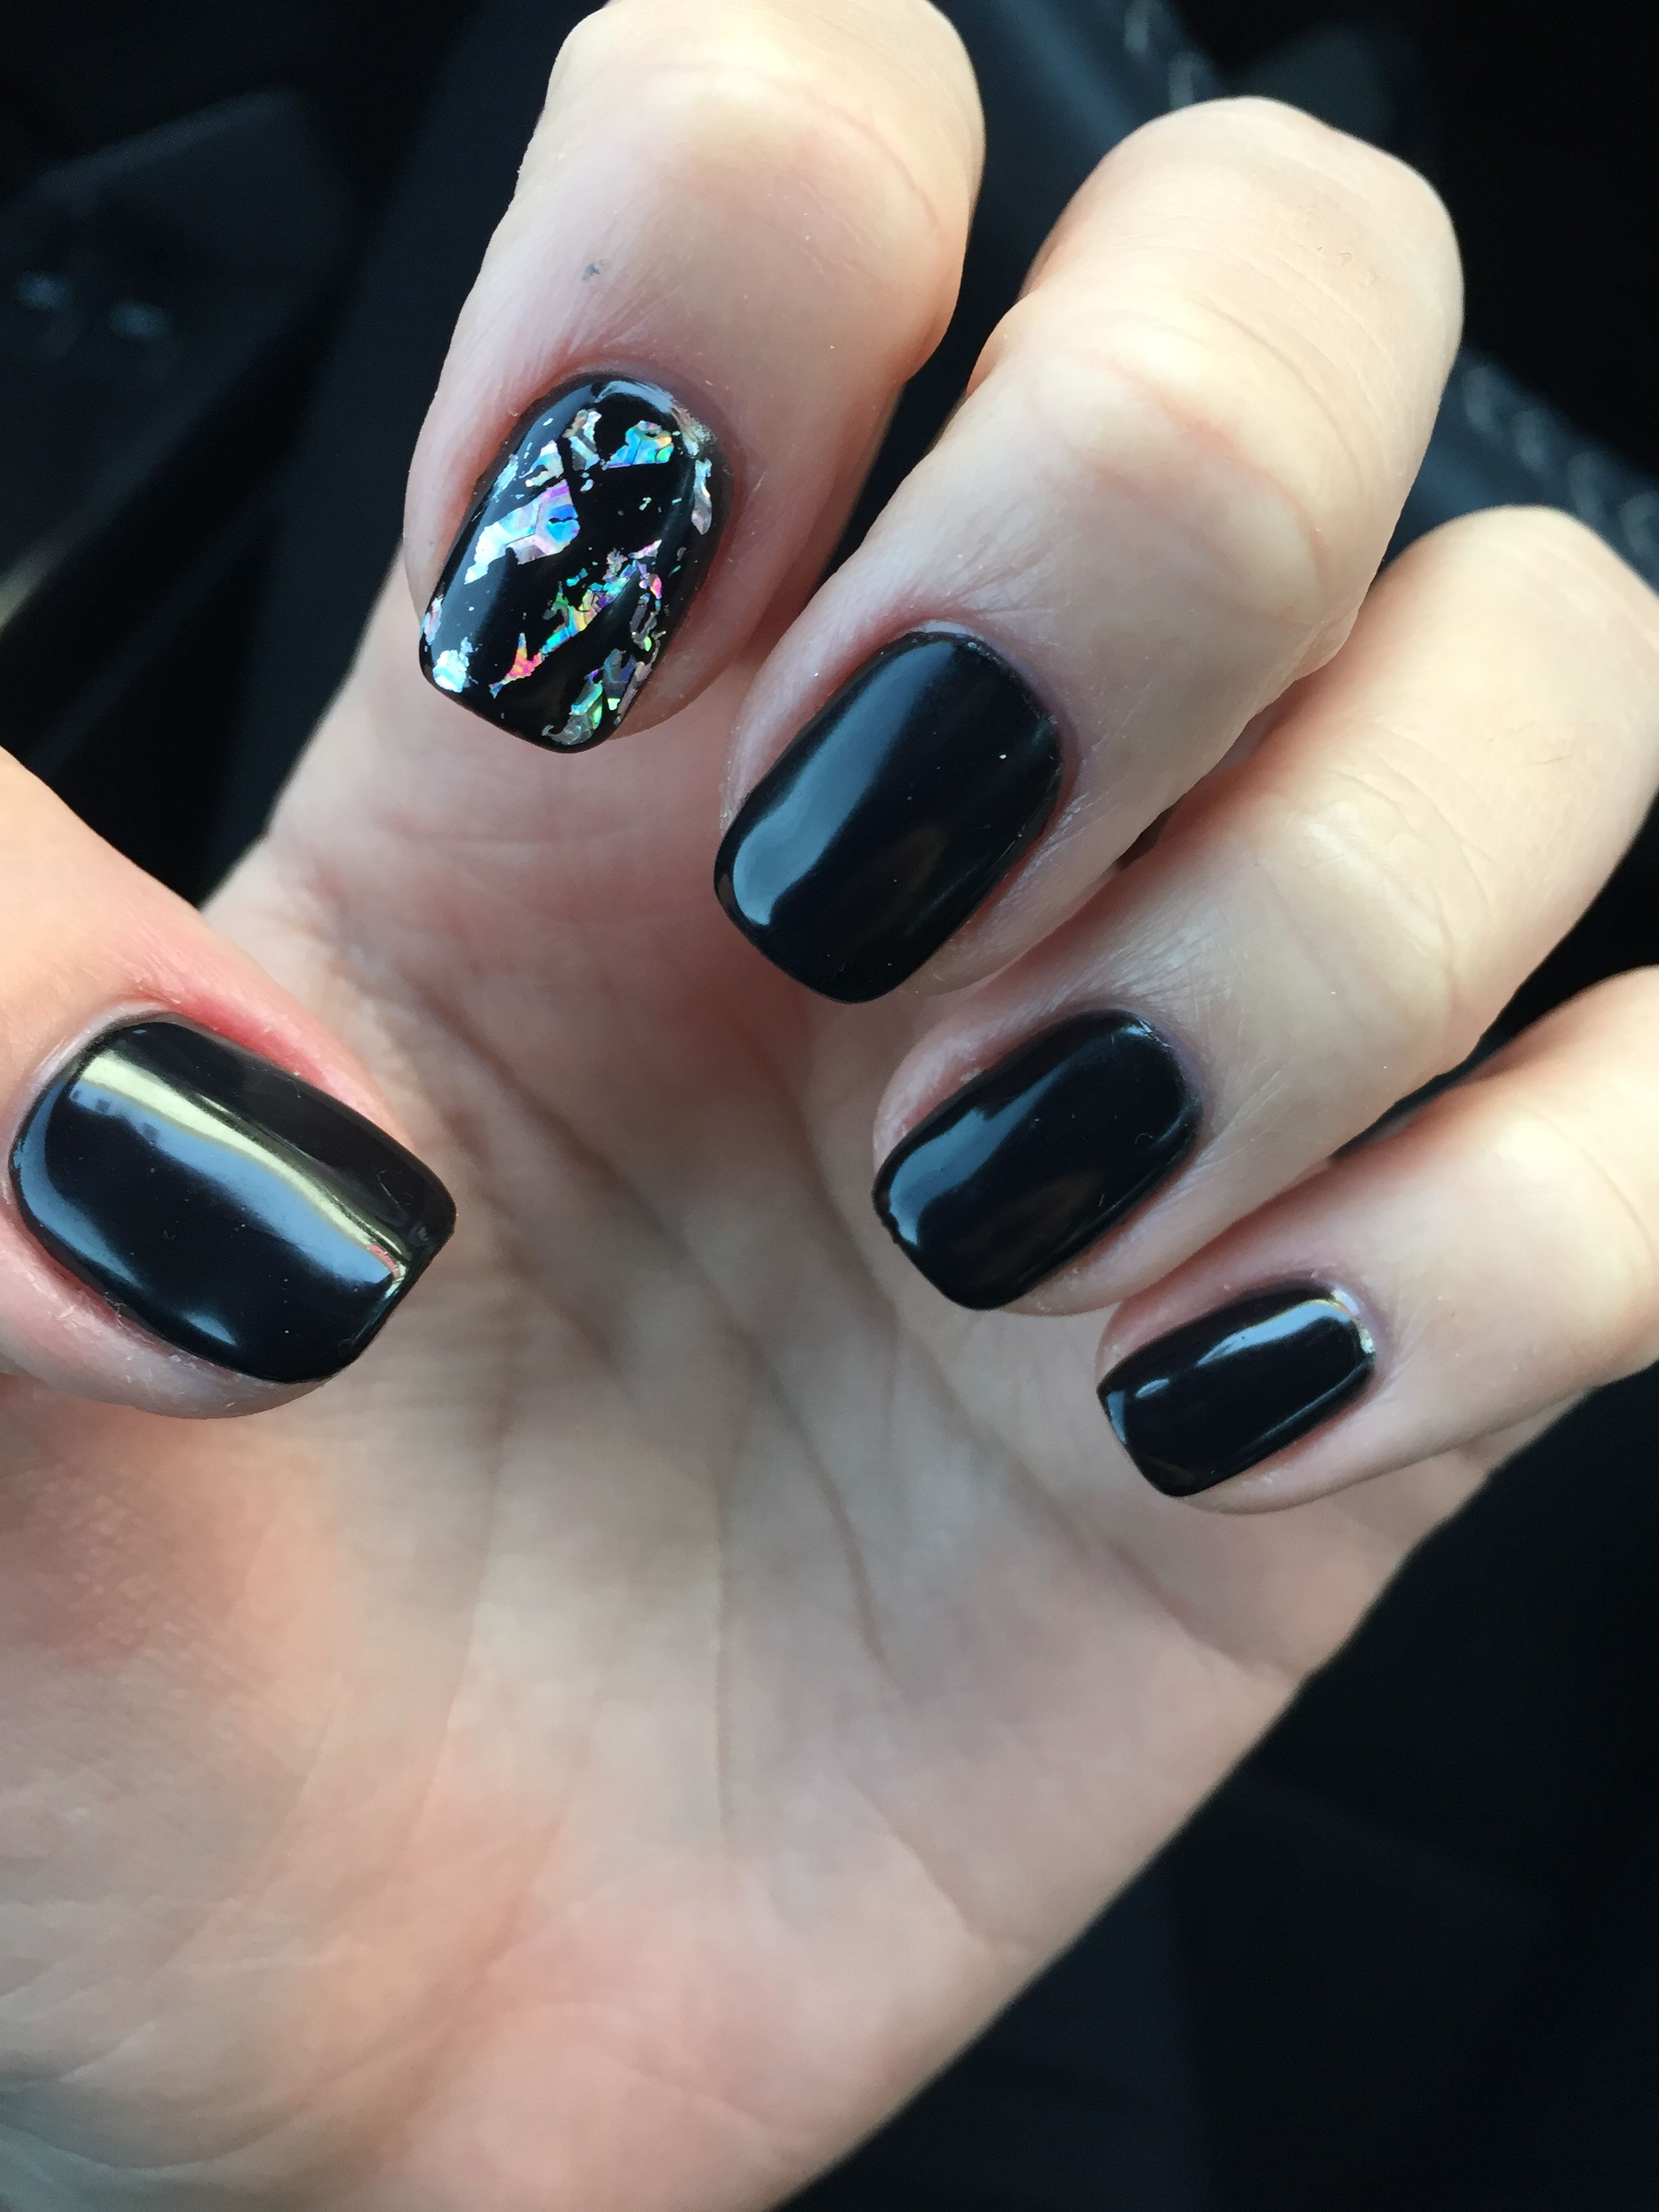 Black Gel Nails With One Silver Glitter Nail: Black Gel Nails With Silver Foil Accent Nail!